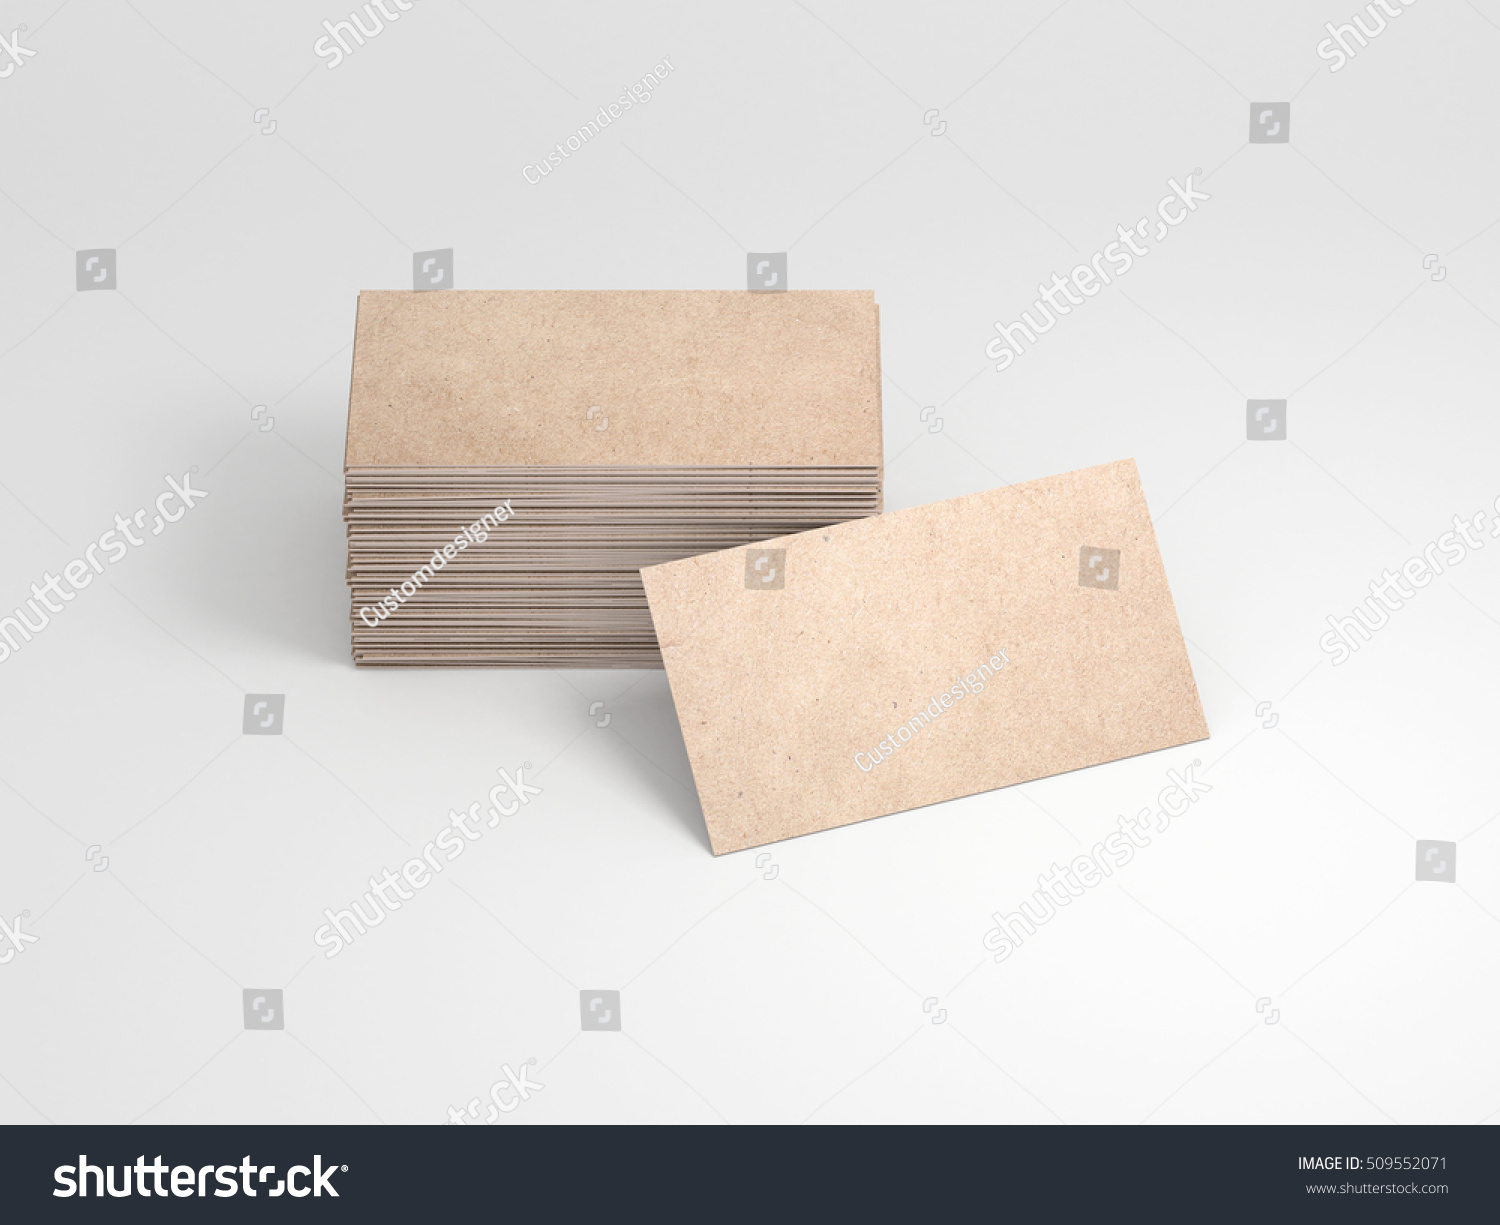 Al capone business cards choice image free business cards al capone business cards image collections free business cards al capone business card gallery free business magicingreecefo Images